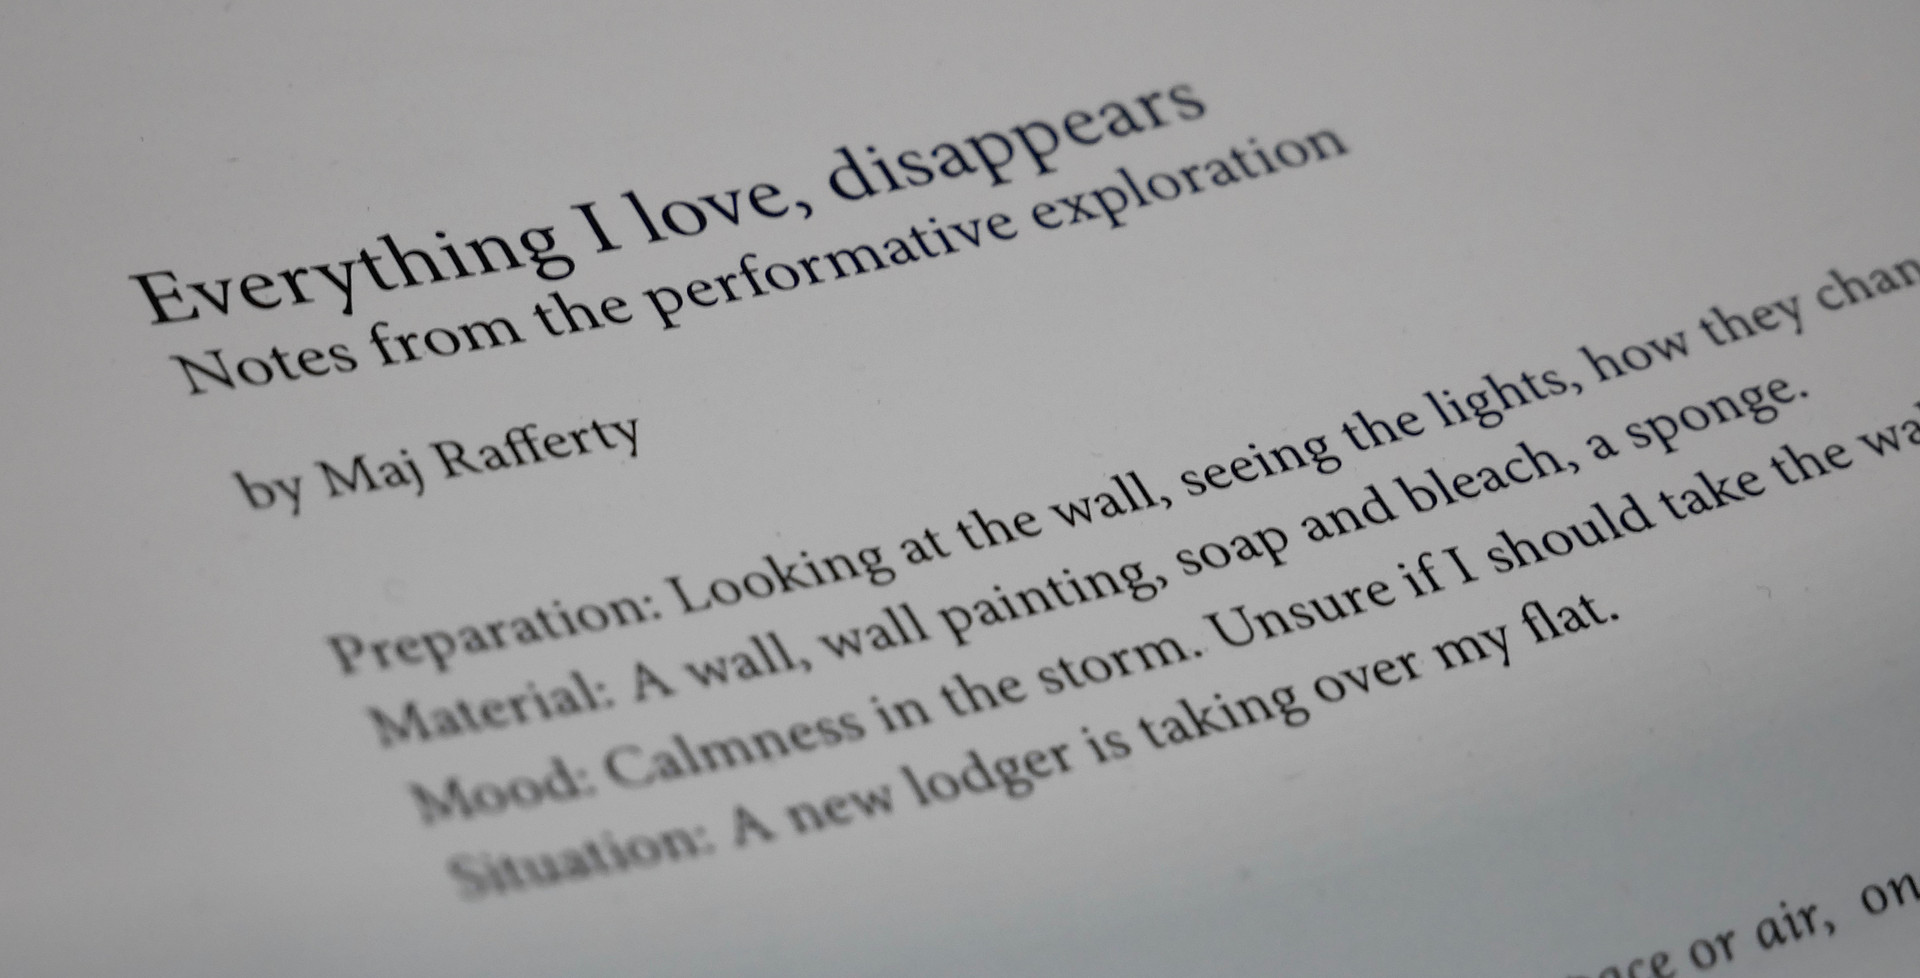 Everything I love, disappears